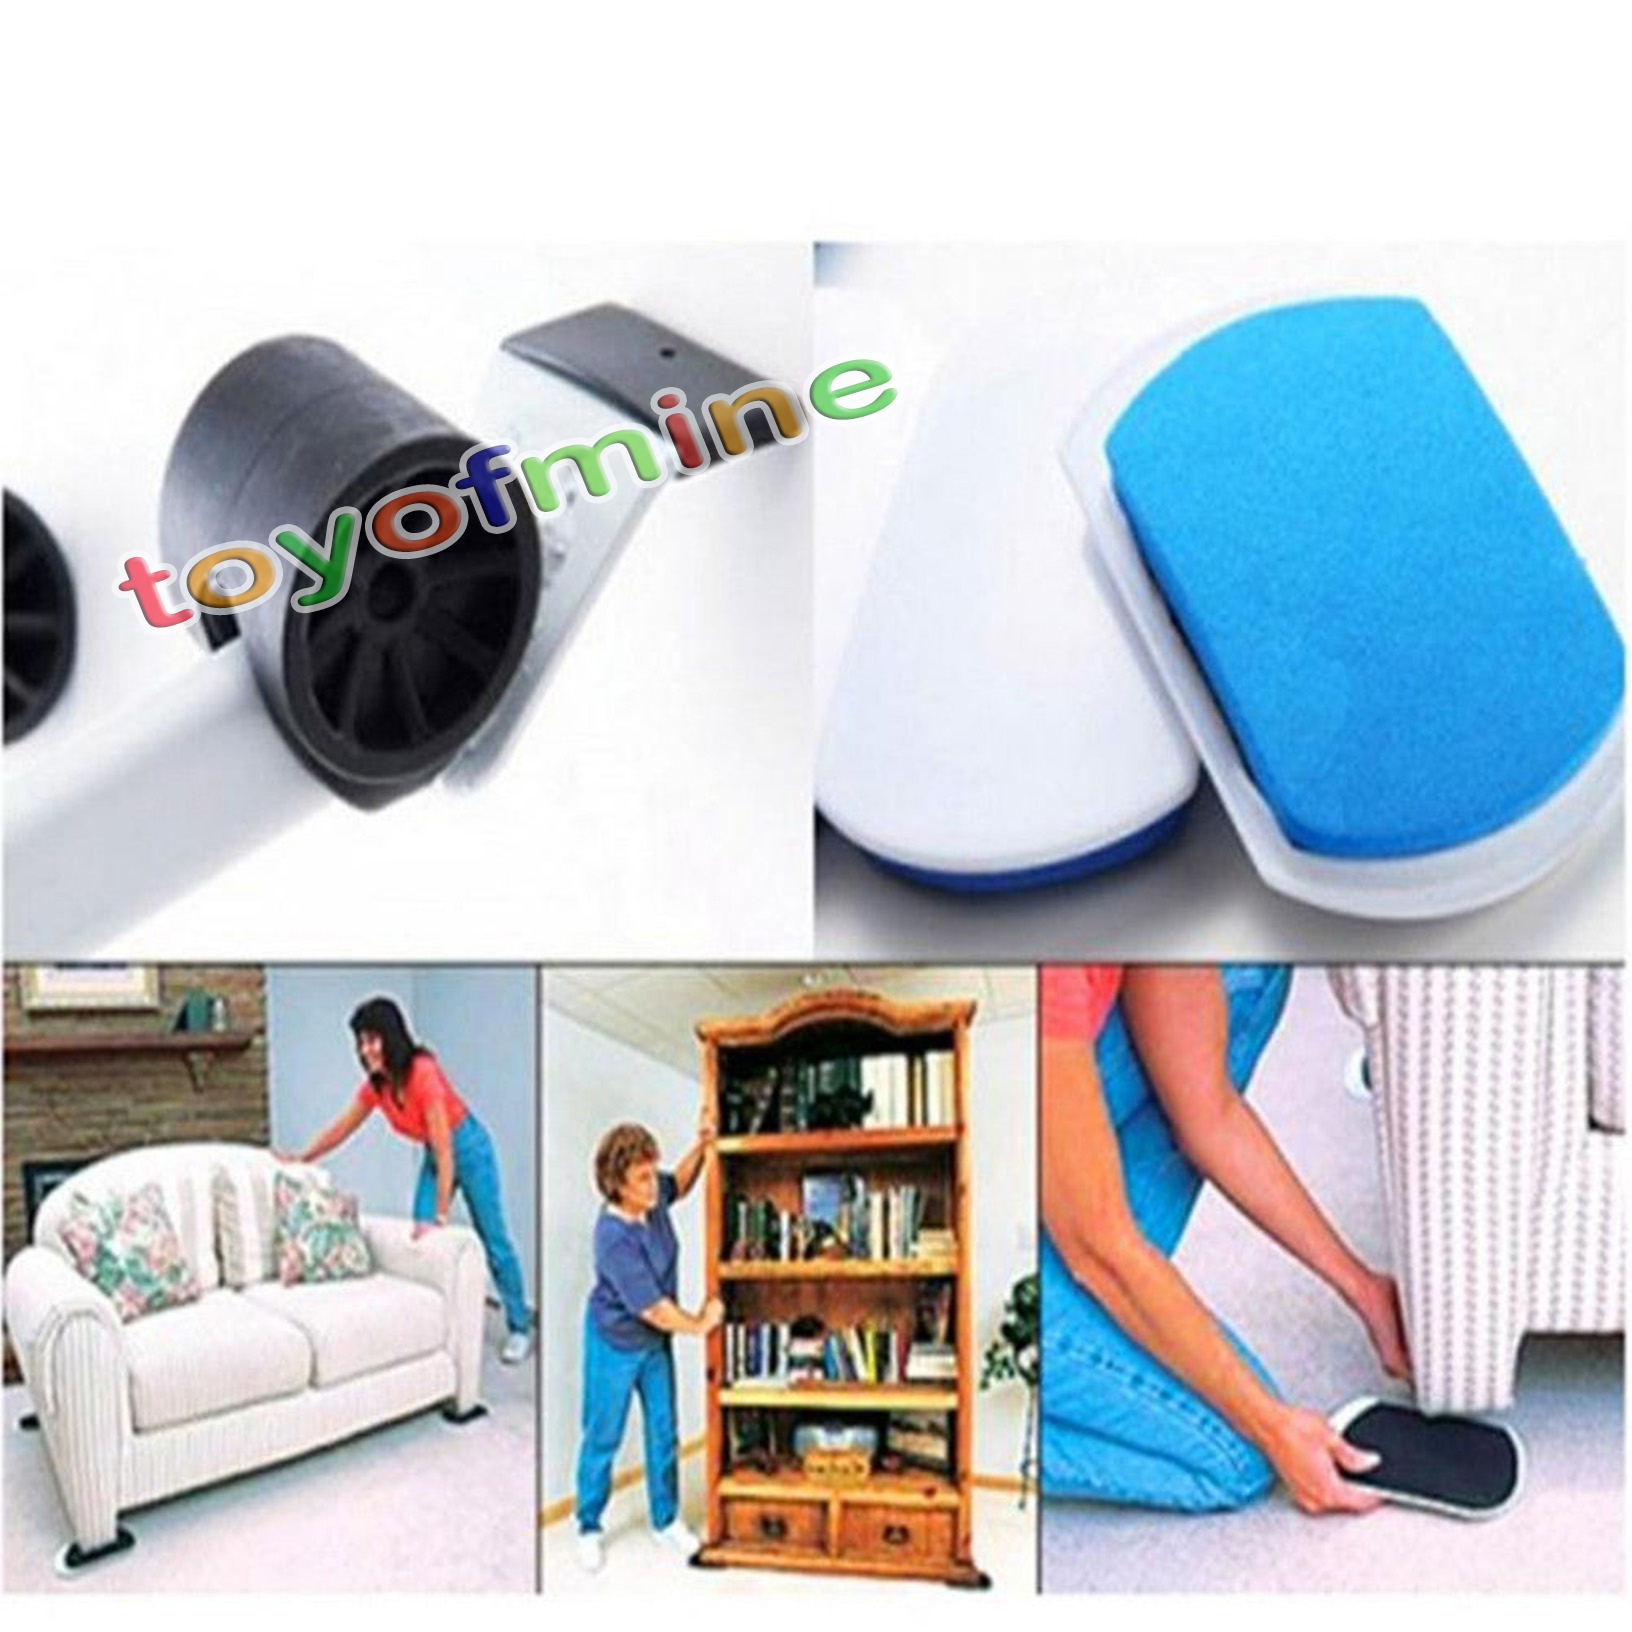 Heavy furniture moving system lifter tool with 4 slide glider pad sofa easy move ebay - Easy to move furniture ...